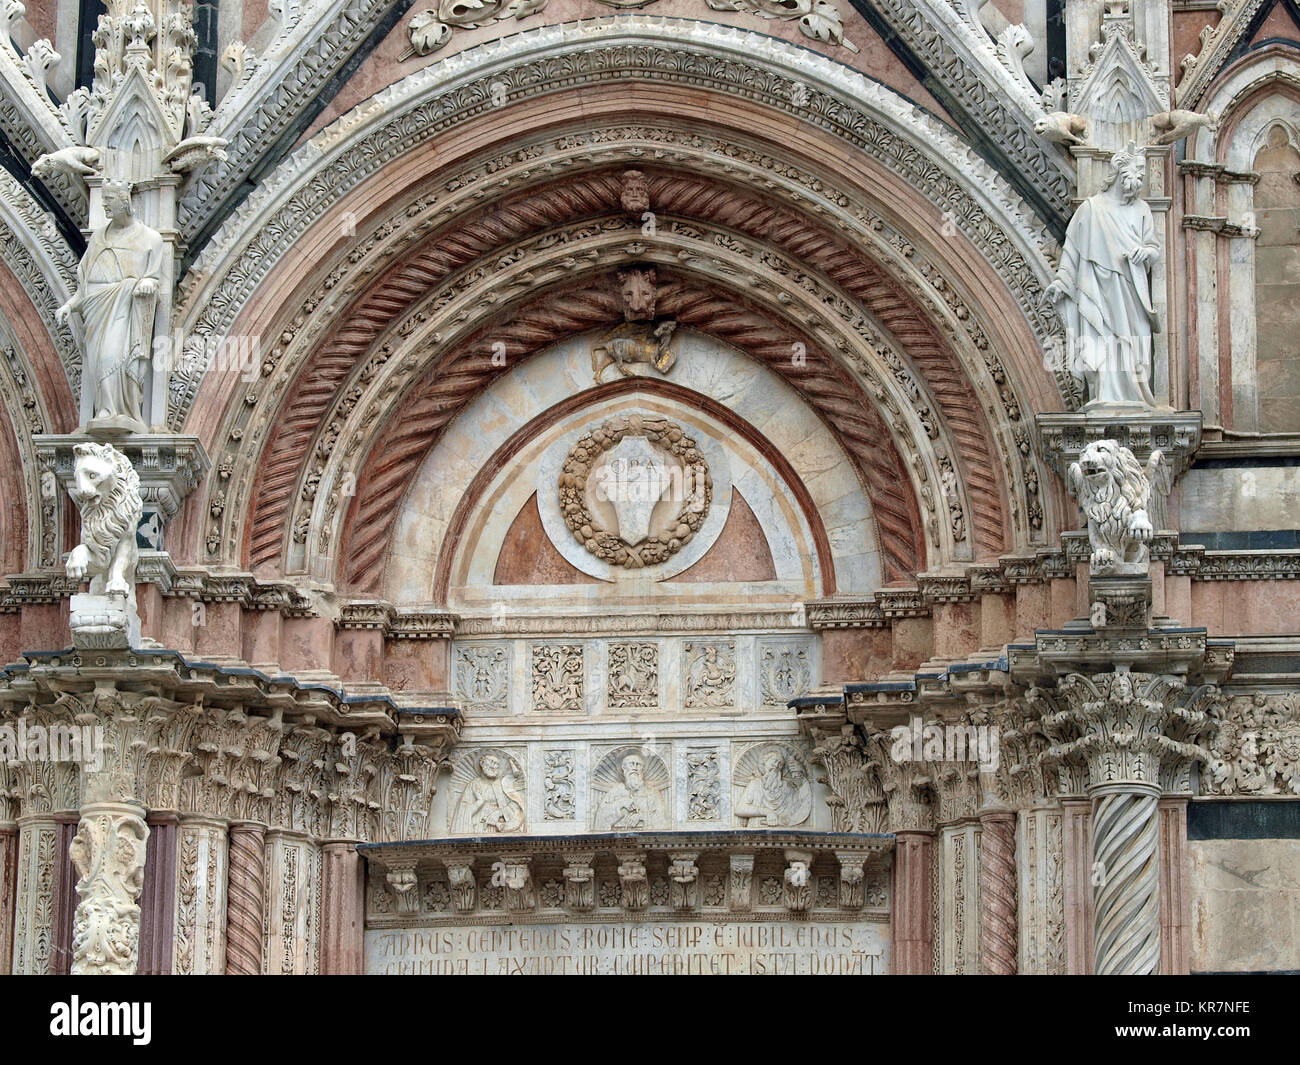 Siena - marble Duomo portal. The Duomo of Siena, which was built in the 12th and 13th centuries, is one of the prettiest - Stock Image